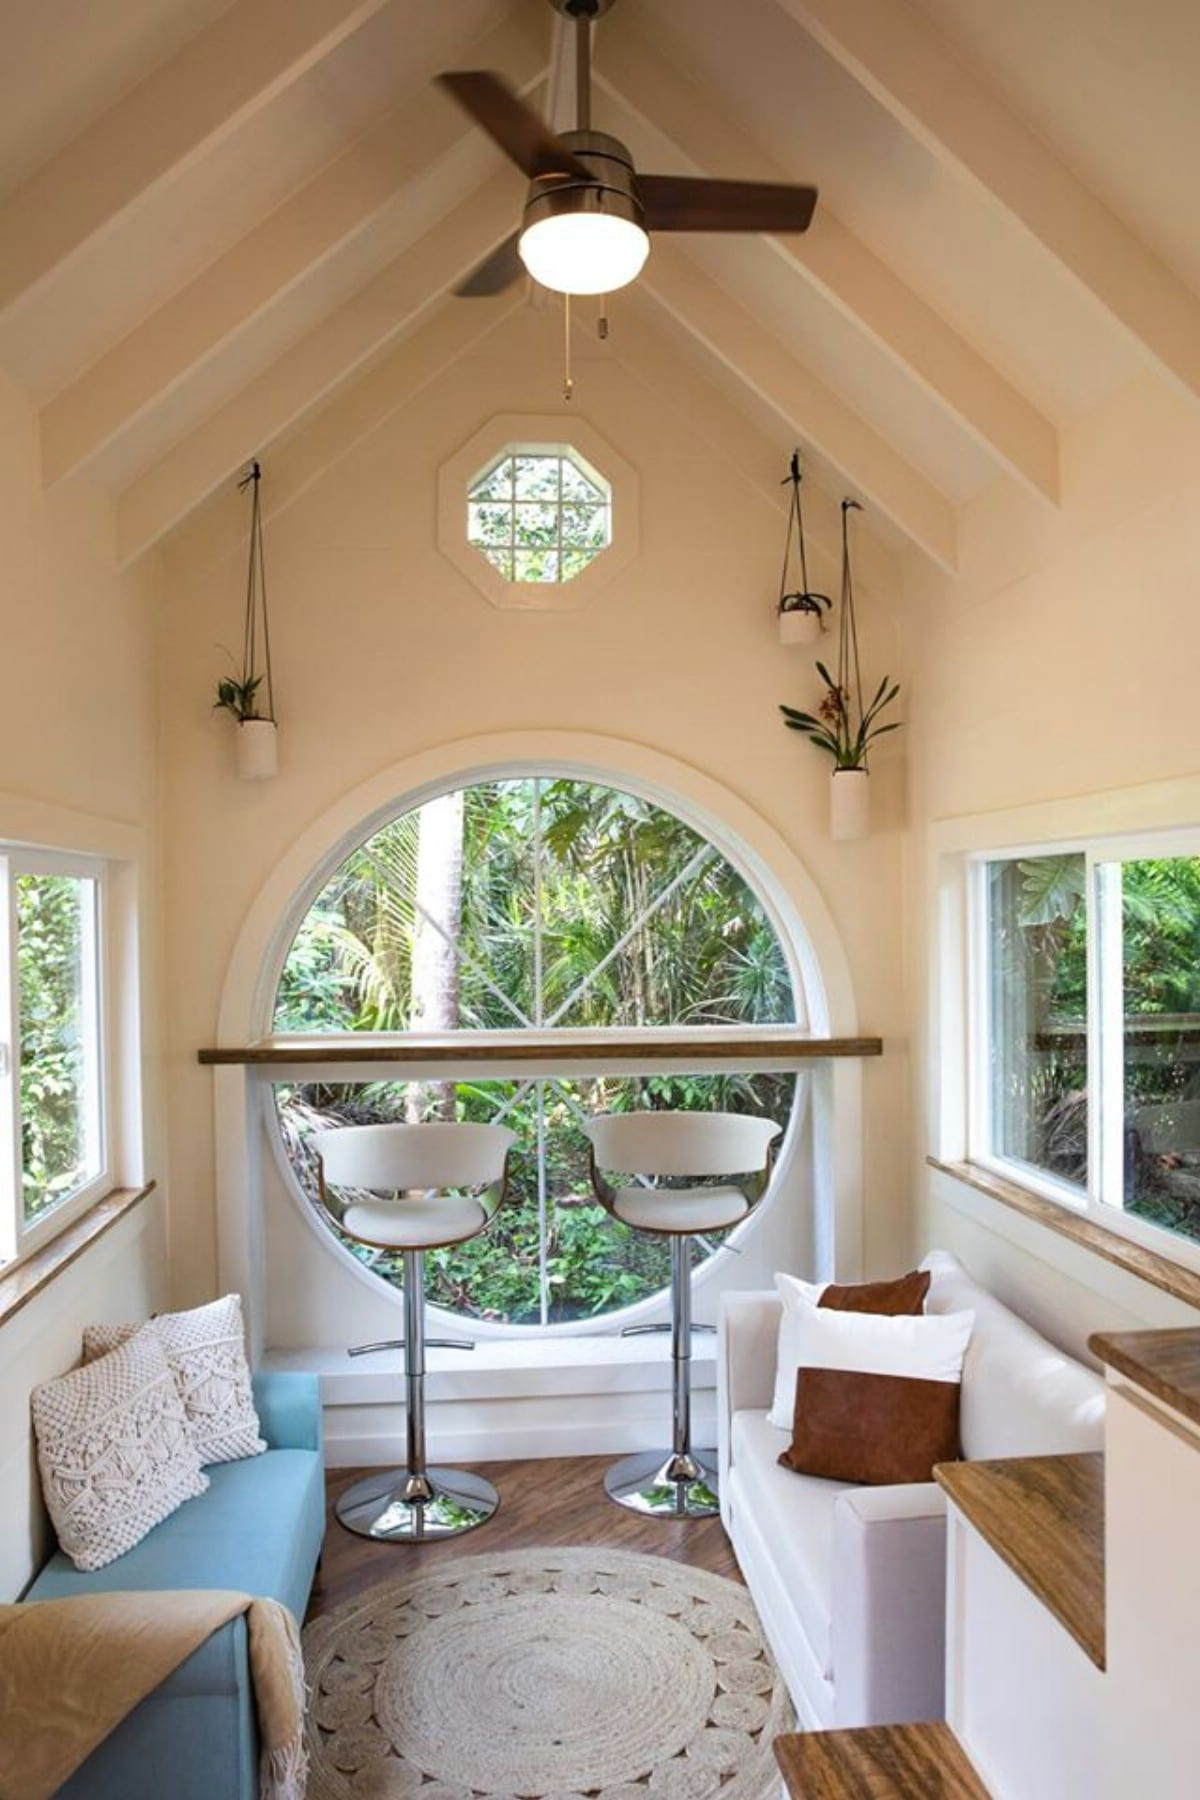 oasis tiny house 11 - Hawaiian tiny house is stacked with space-saving solutions including a shower jutting out over the trailer's tongue